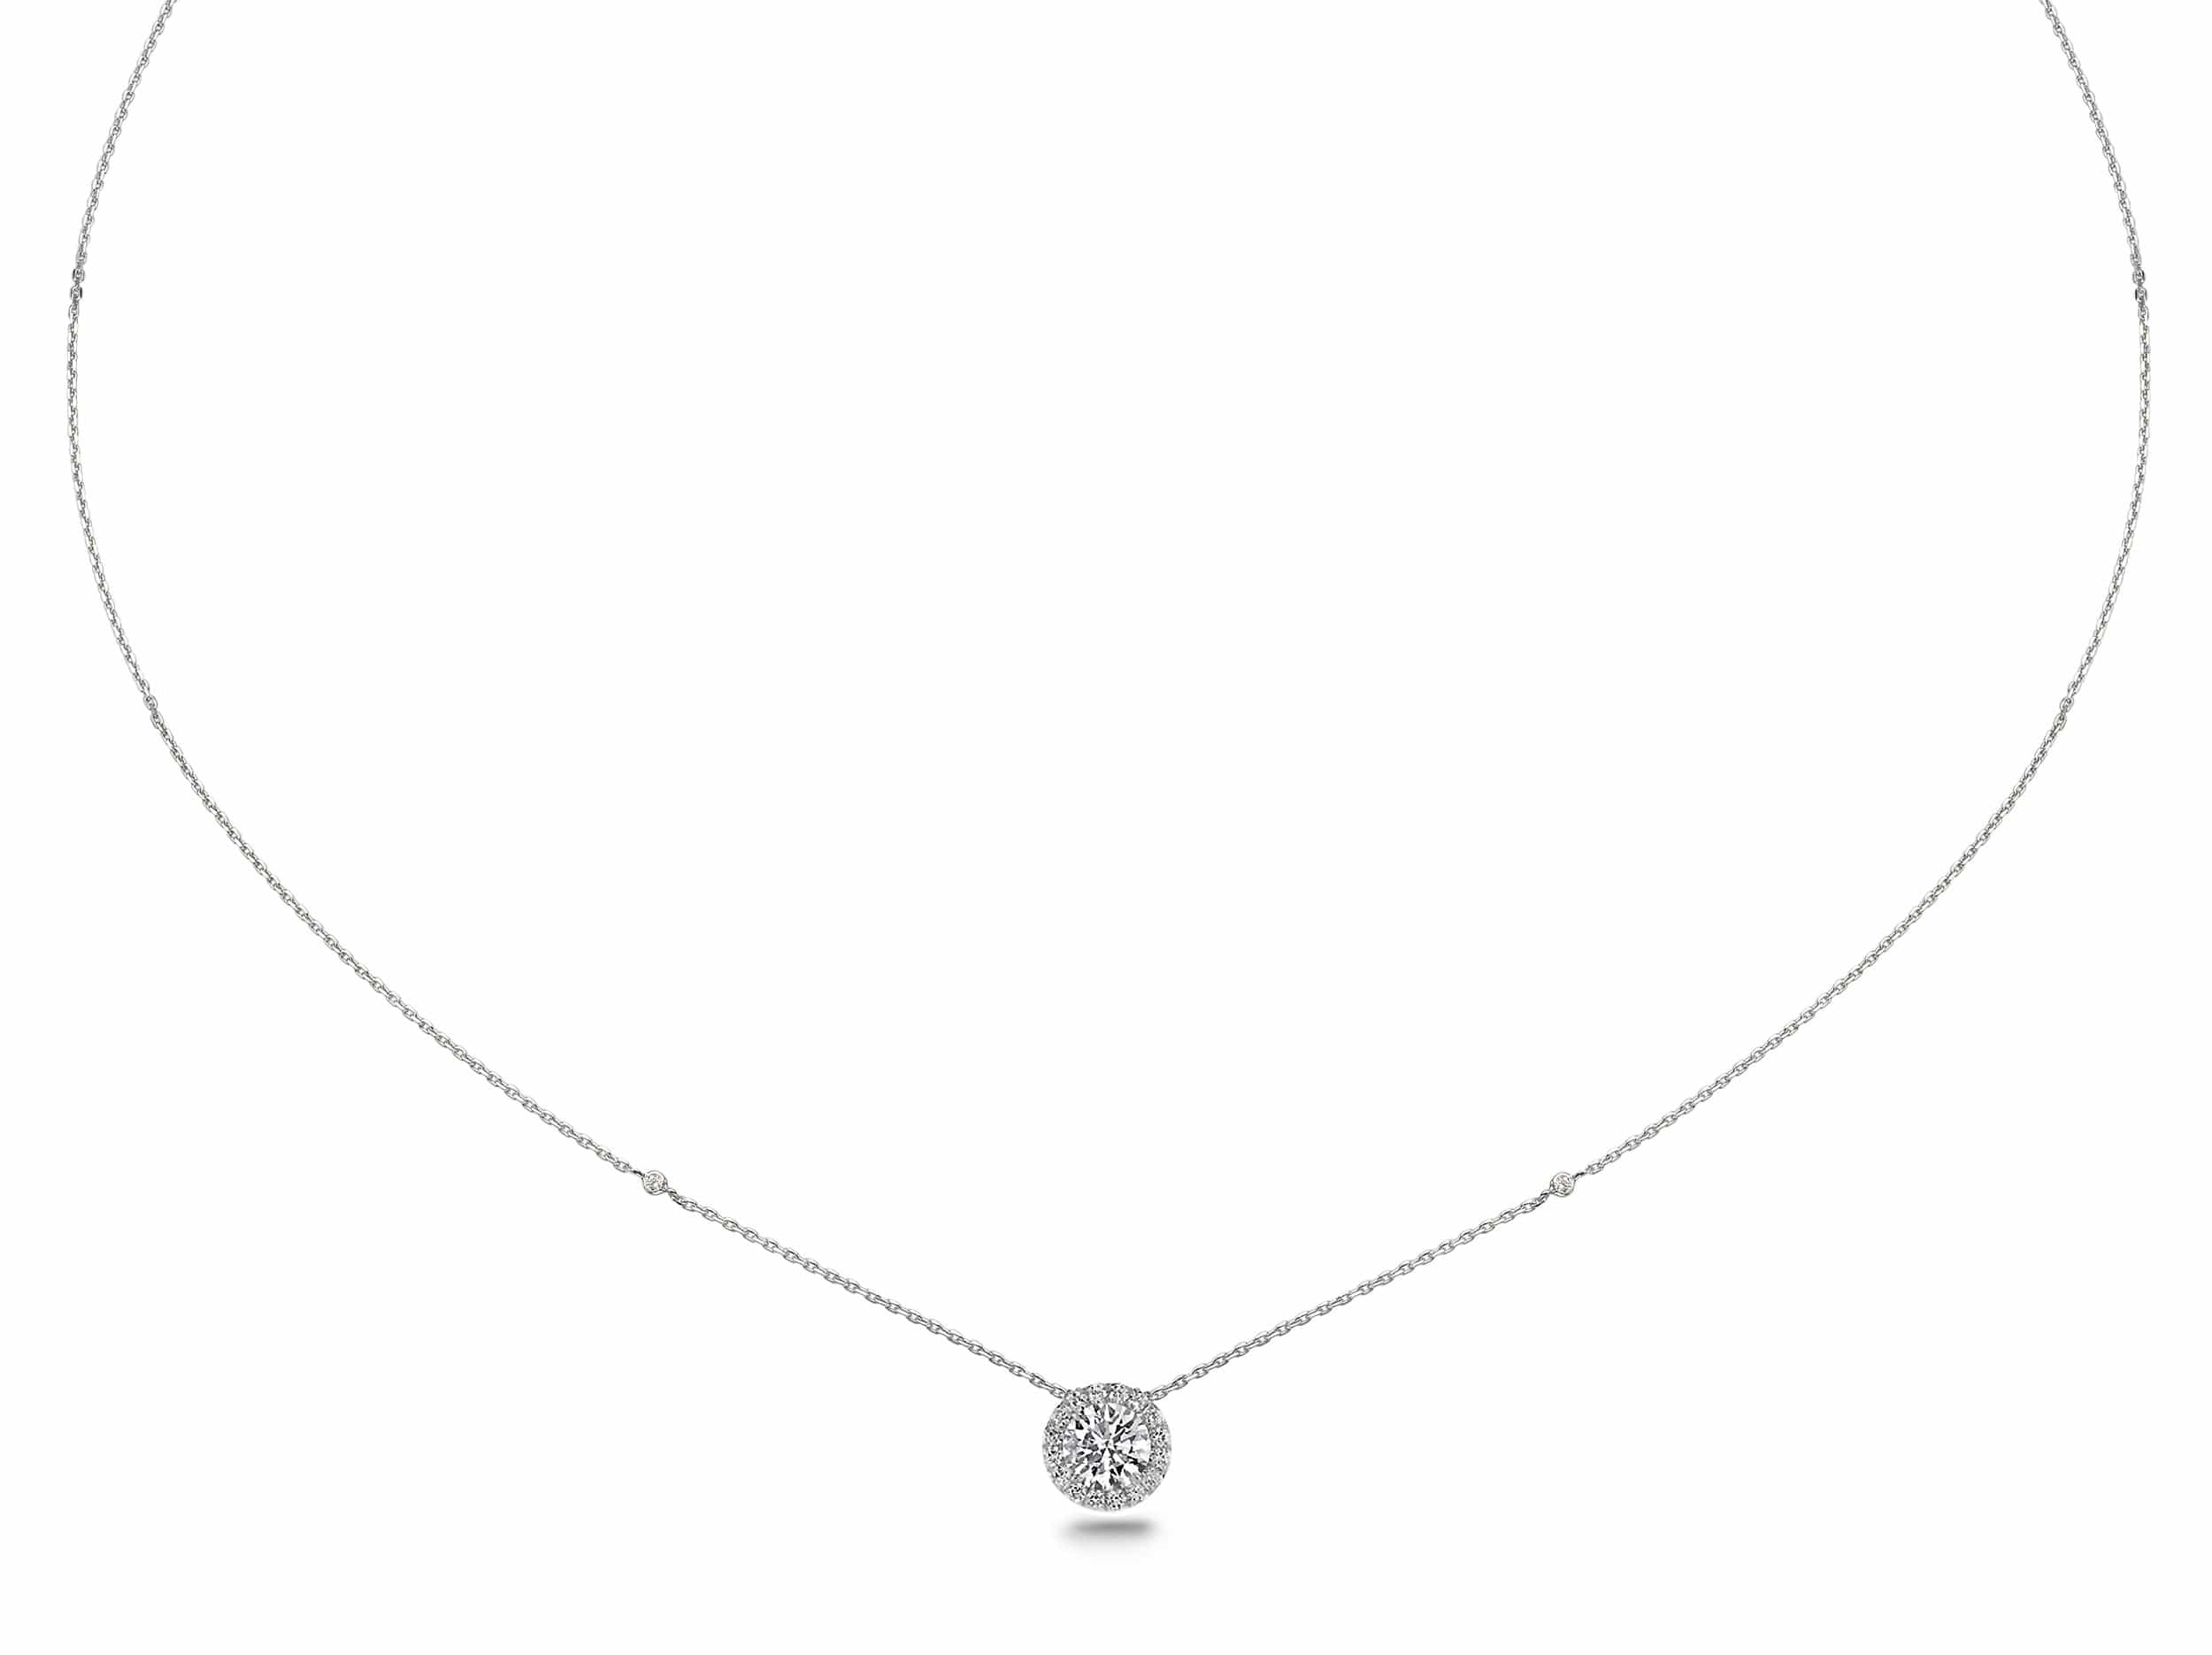 1.20 ct Round Brilliant Cut Diamond Necklace Pendant